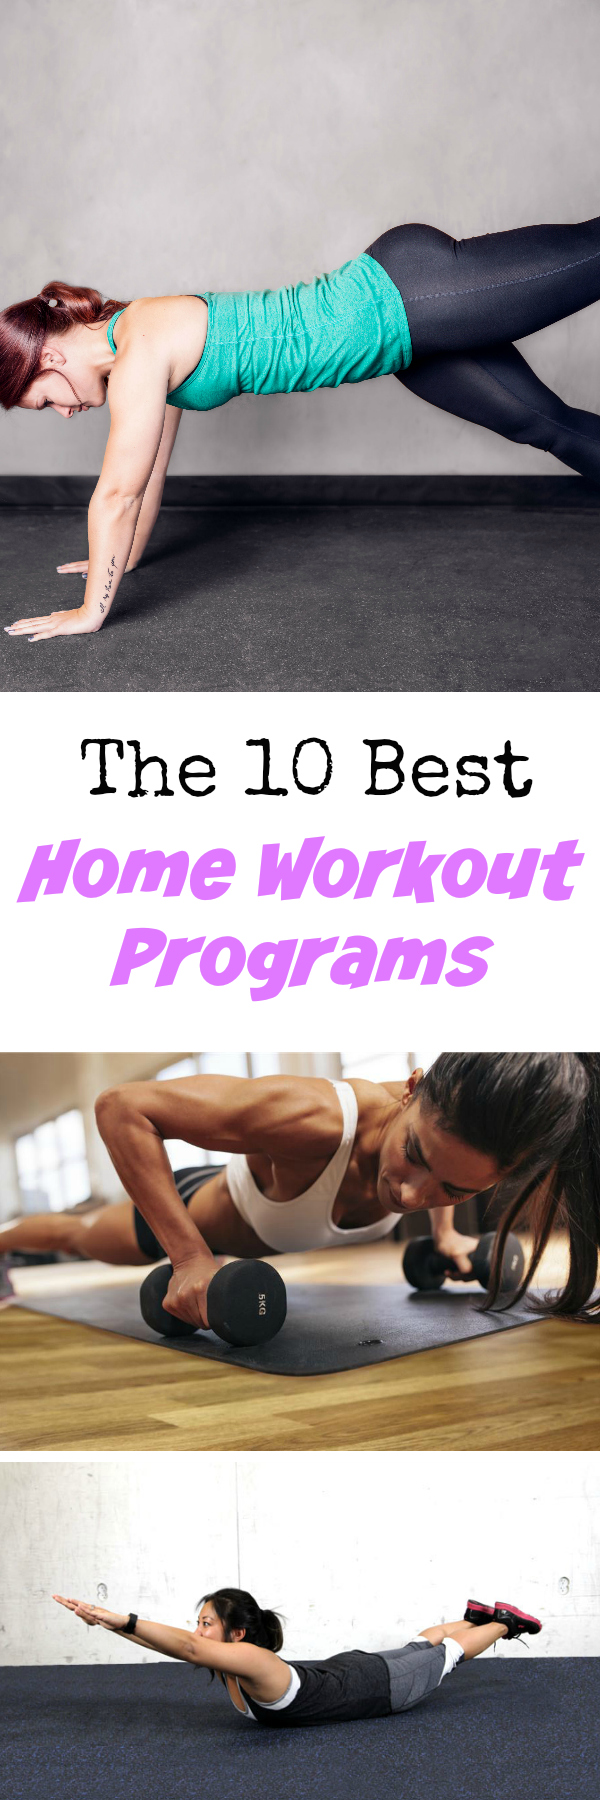 The 10 Best Home Workout Programs: 10 killer home workouts that will make you excited to get your sweat on at home!